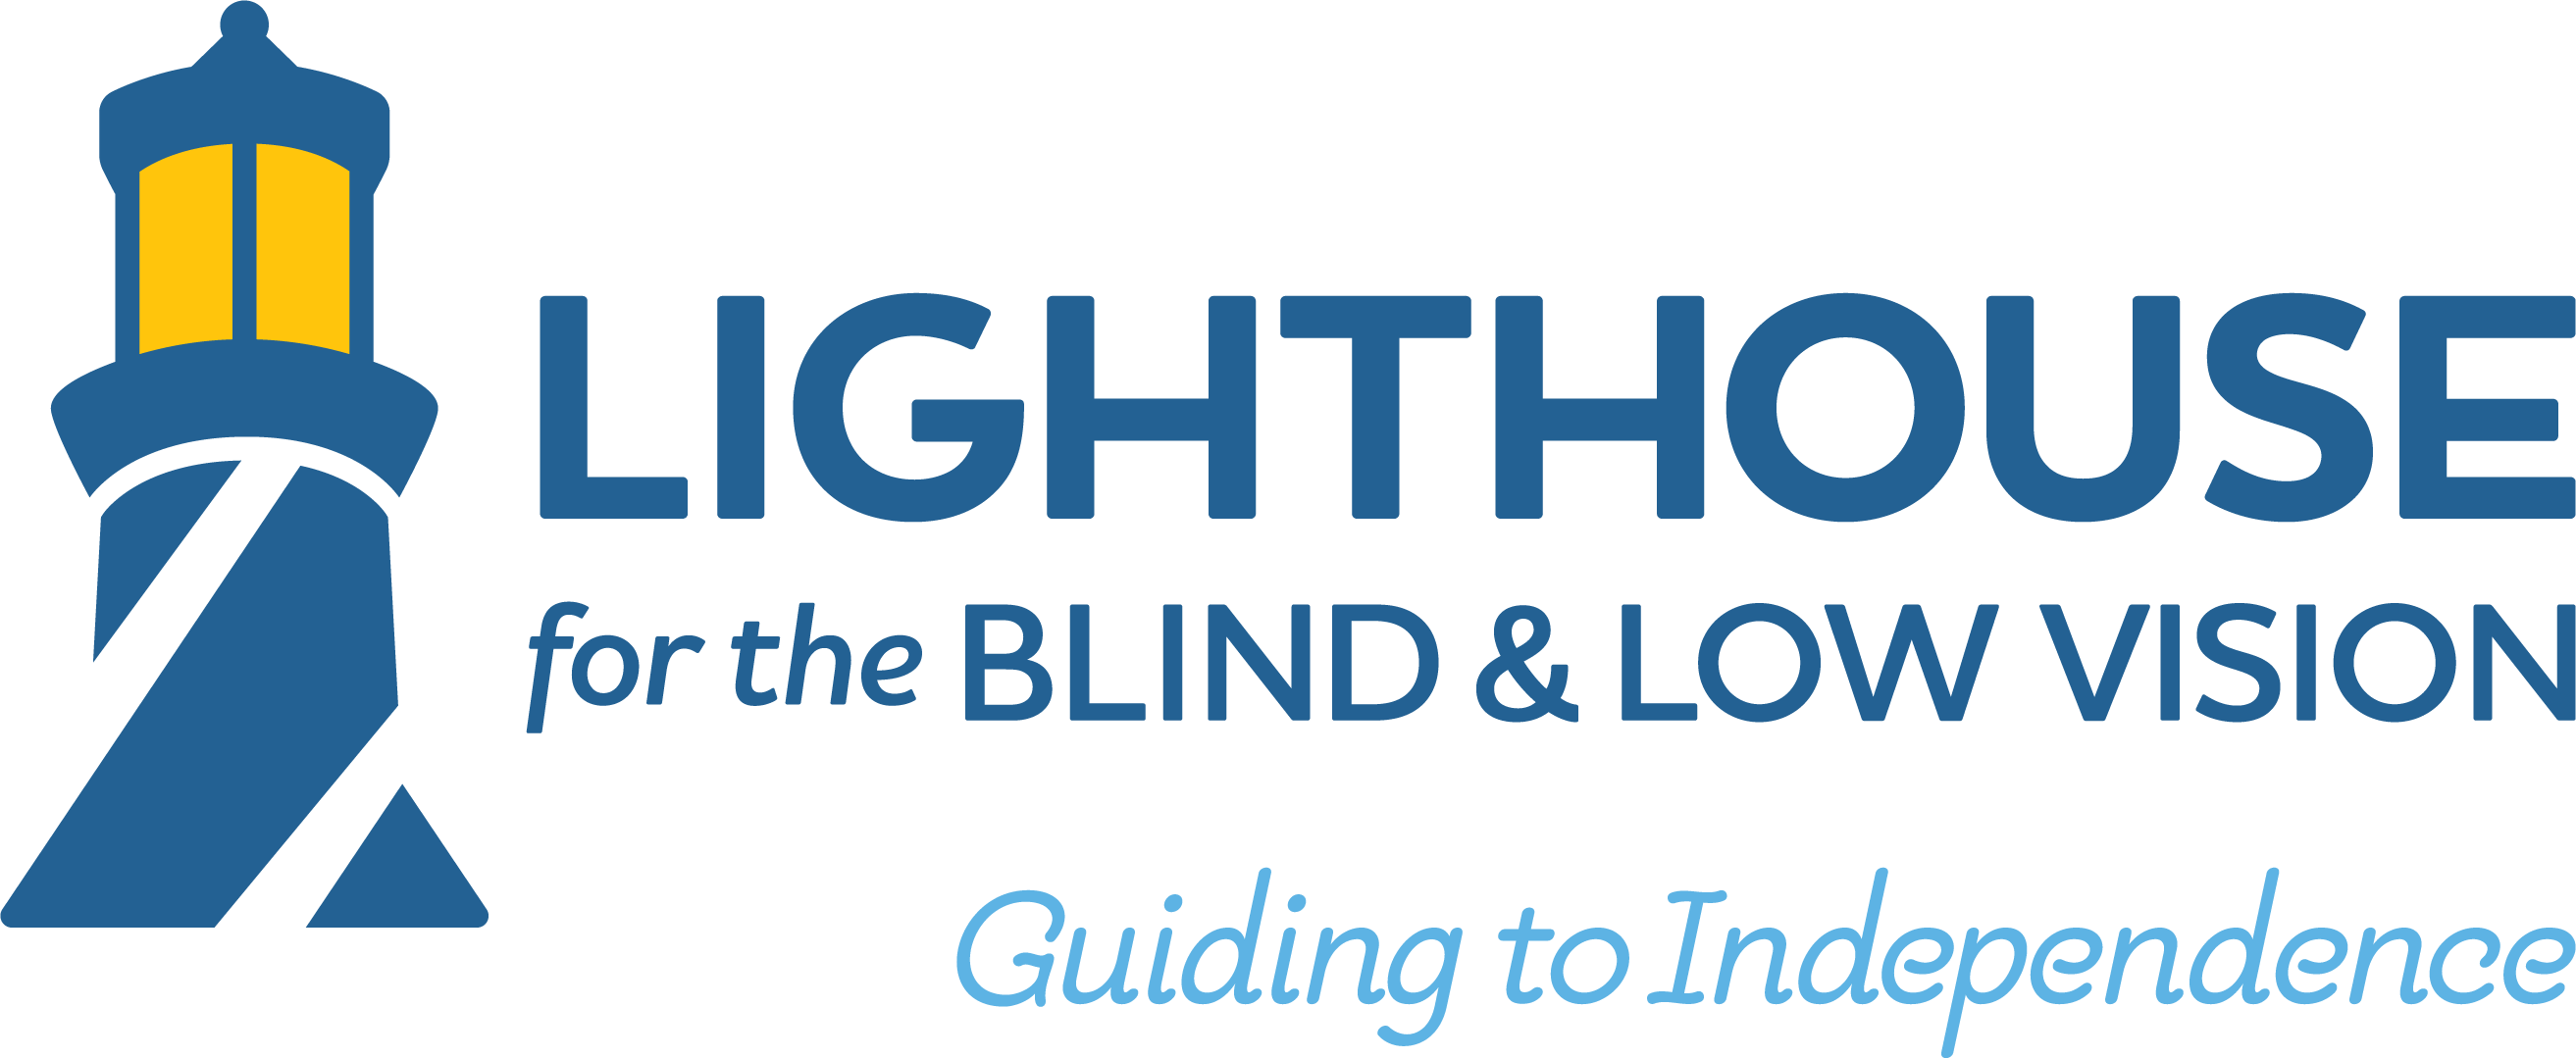 *DEV* Lighthouse for the Blind & Low Vision